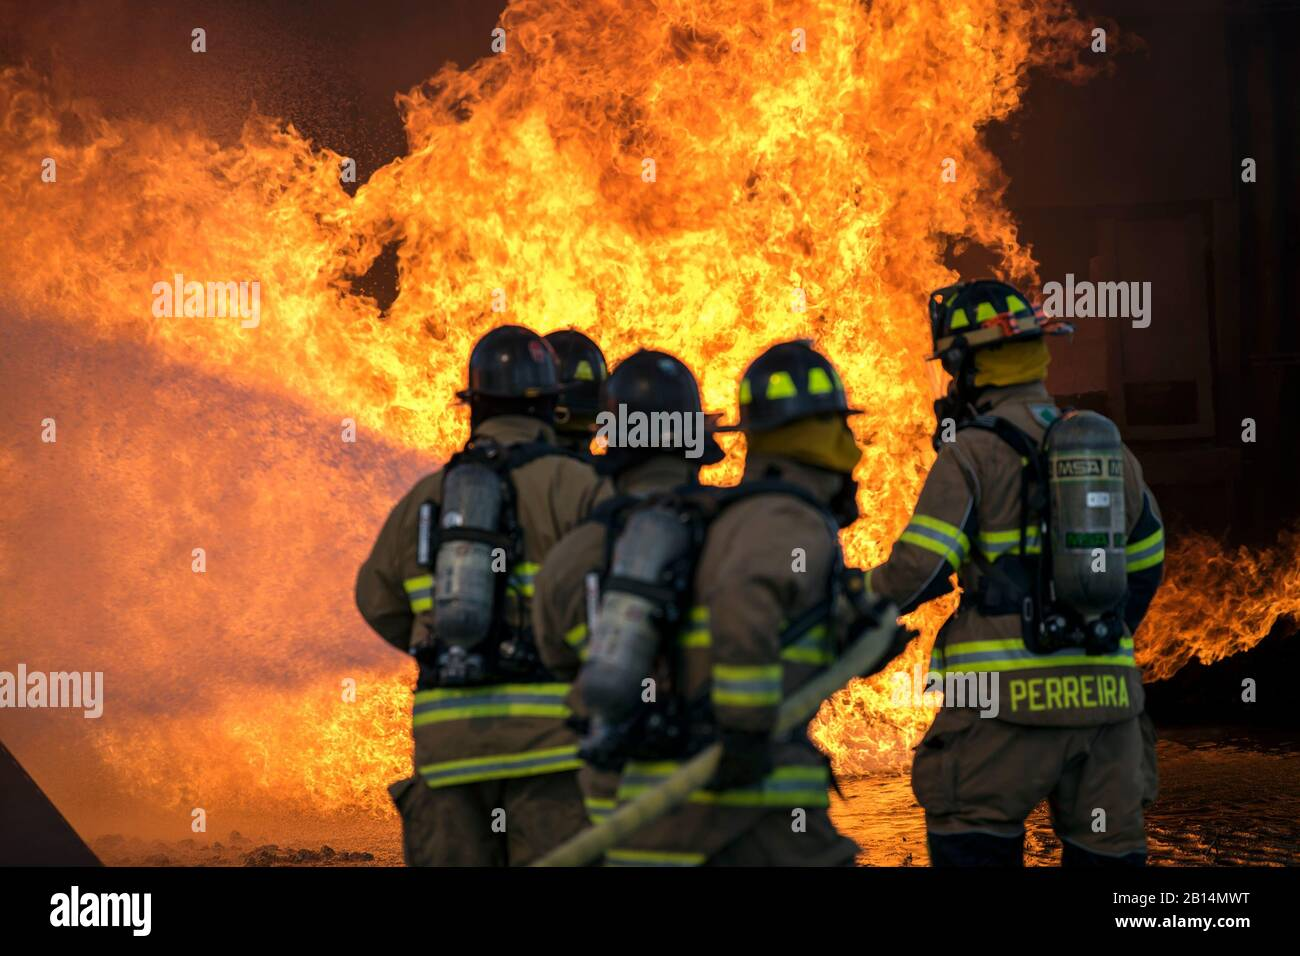 Firefighters assigned to the U.S. Air Force 23rd Civil Engineer Squadron (CES) extinguish an aircraft fire during live-fire training, April 24, 2018, at Moody Air Force Base, Georgia. Firefighters from the 23d CES and Valdosta Fire Department participated in the training to gain more experience fighting aircraft fires and to work together as a cohesive team while still practicing proper and safe firefighting techniques. (U.S. Air Force photo by Airman 1st Class Eugene Oliver) Stock Photo